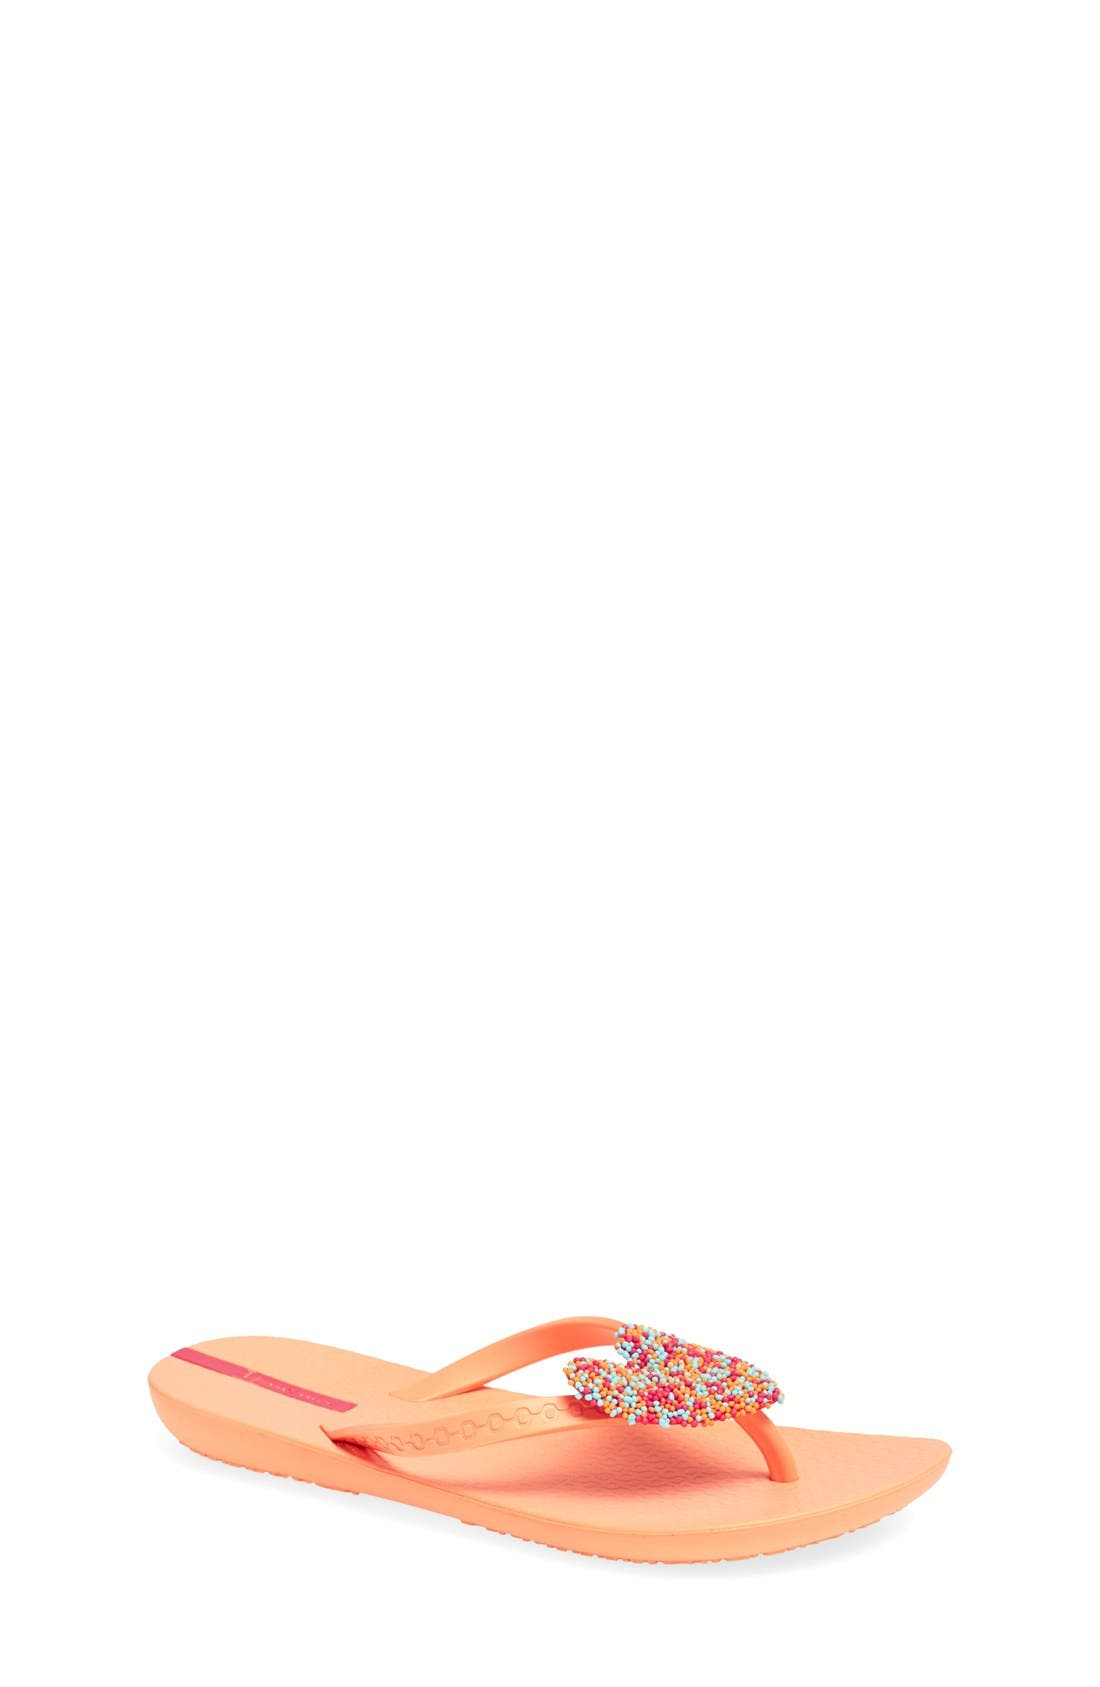 Main Image - Ipanema 'Summer Love' Flip Flop (Toddler & Little Kid)